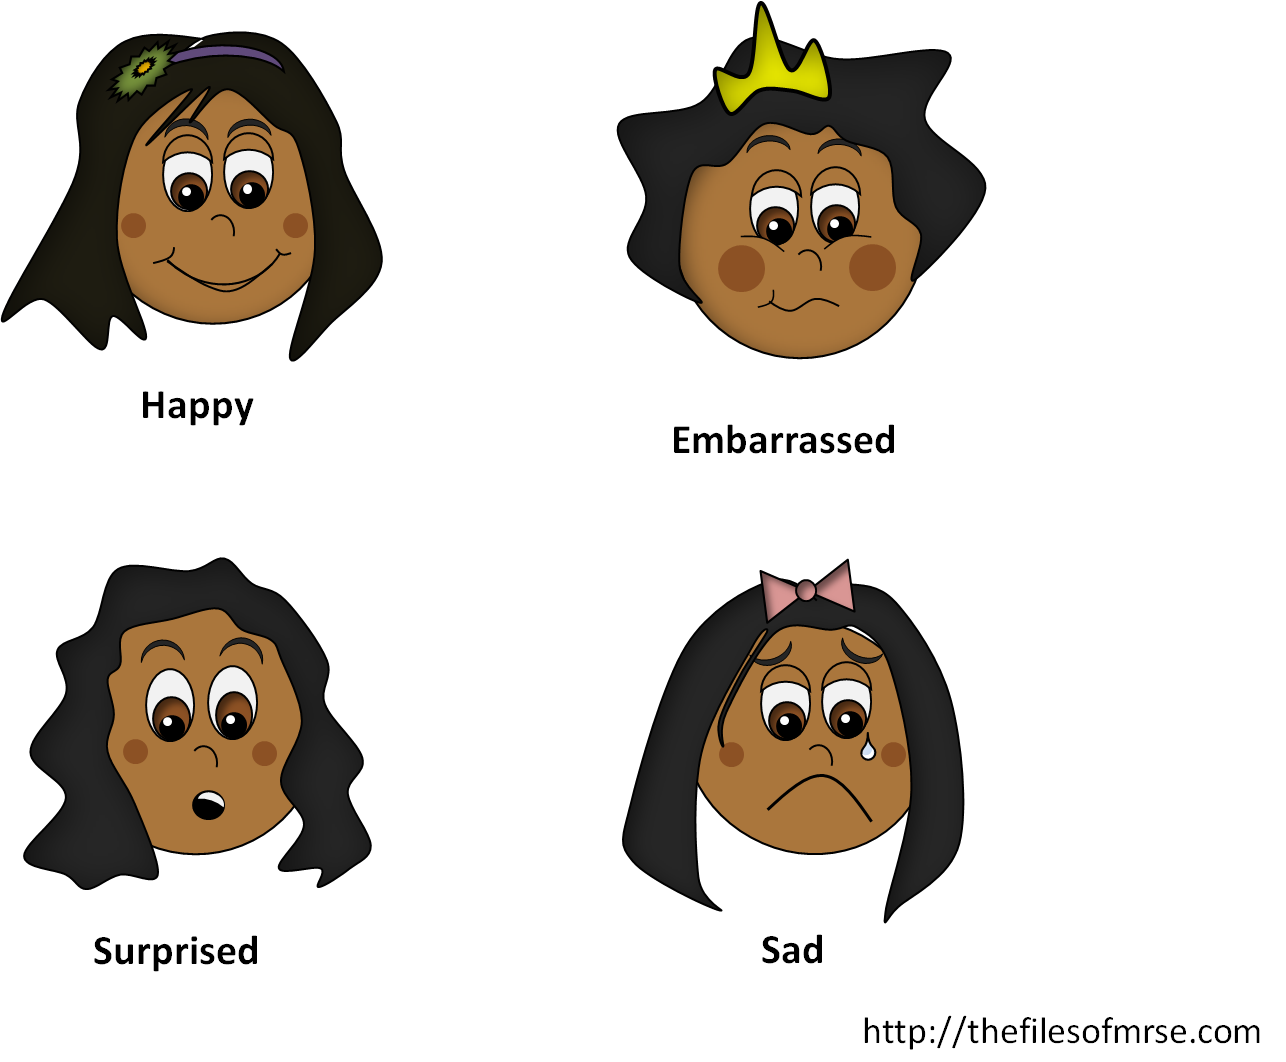 Emotion the files of. Name clipart different facial expression